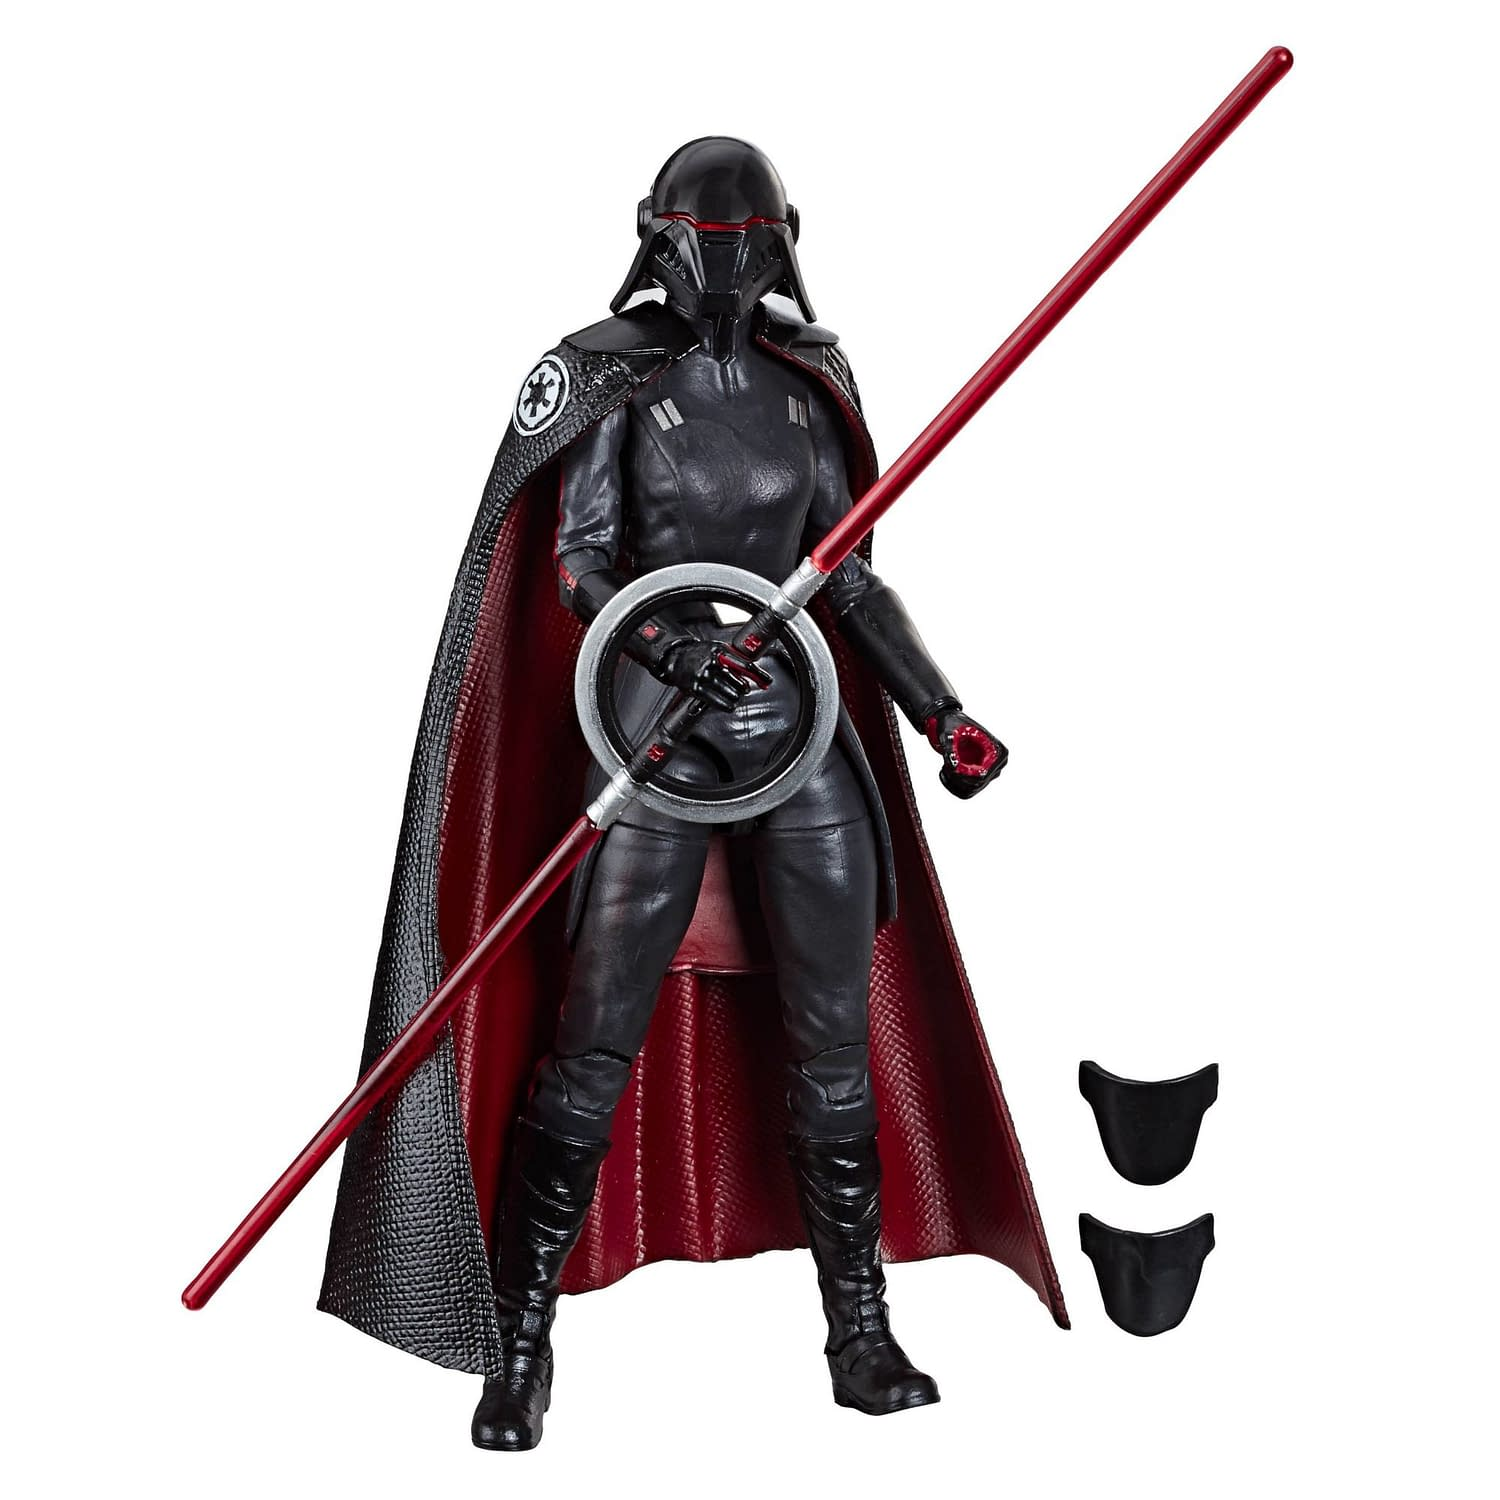 Star Wars Jedi: Fallen Order Black Series Figures Rise Up